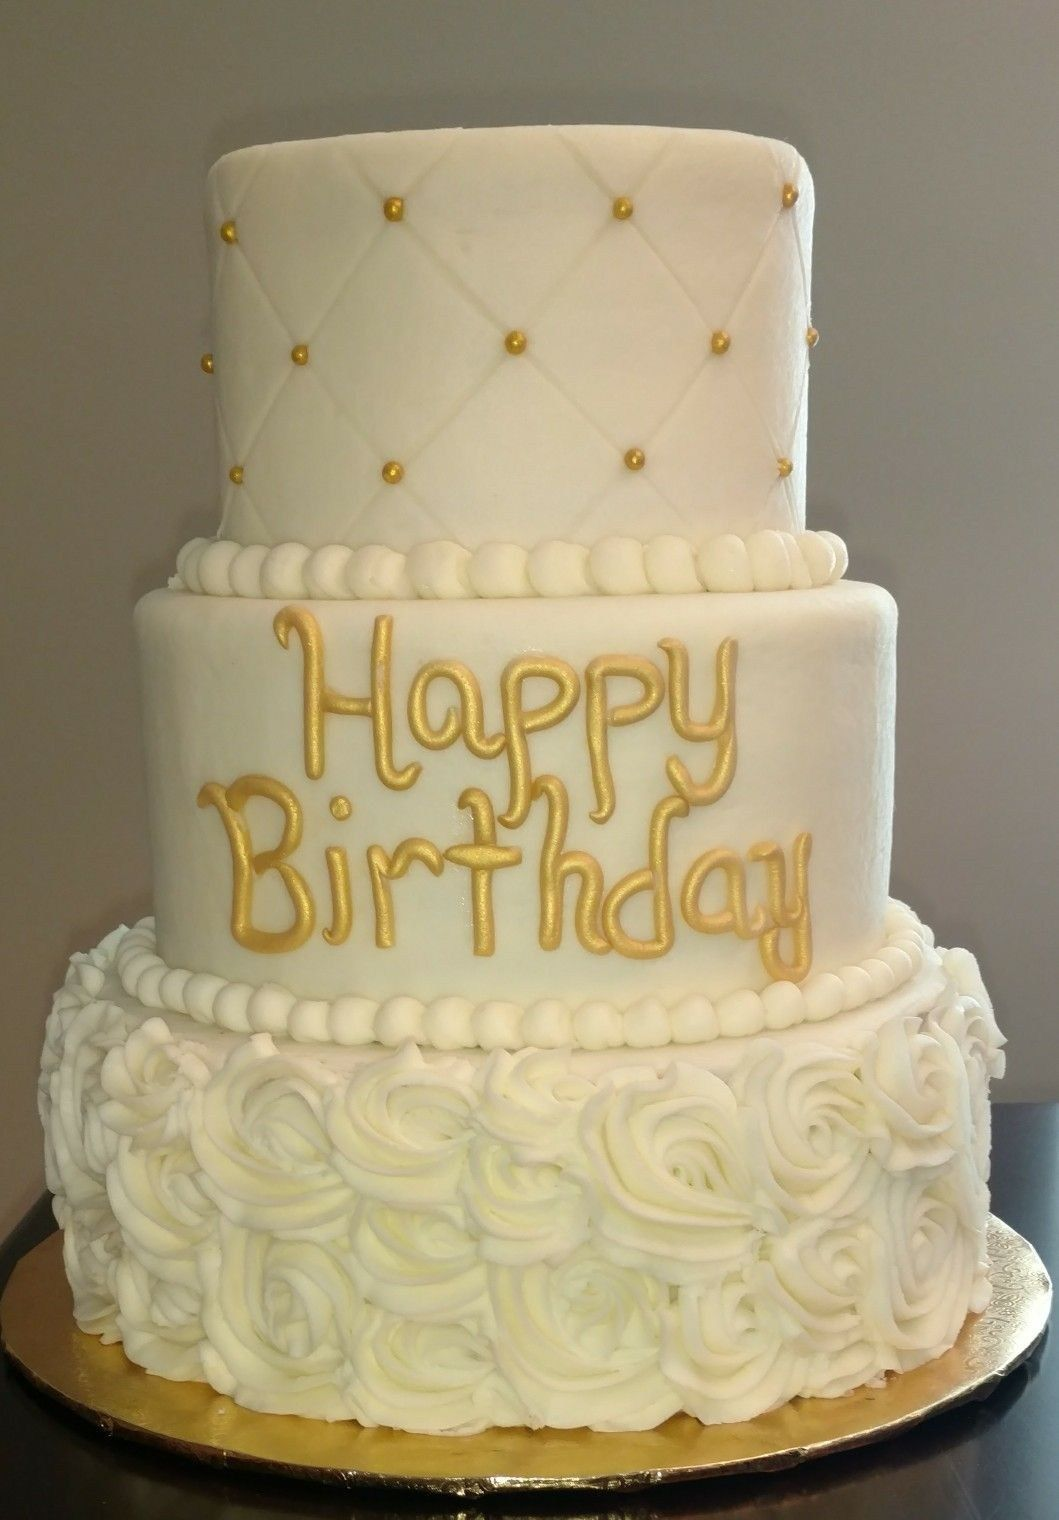 Swell 24 Exclusive Photo Of Formal Birthday Cakes Gold Birthday Cake Funny Birthday Cards Online Amentibdeldamsfinfo